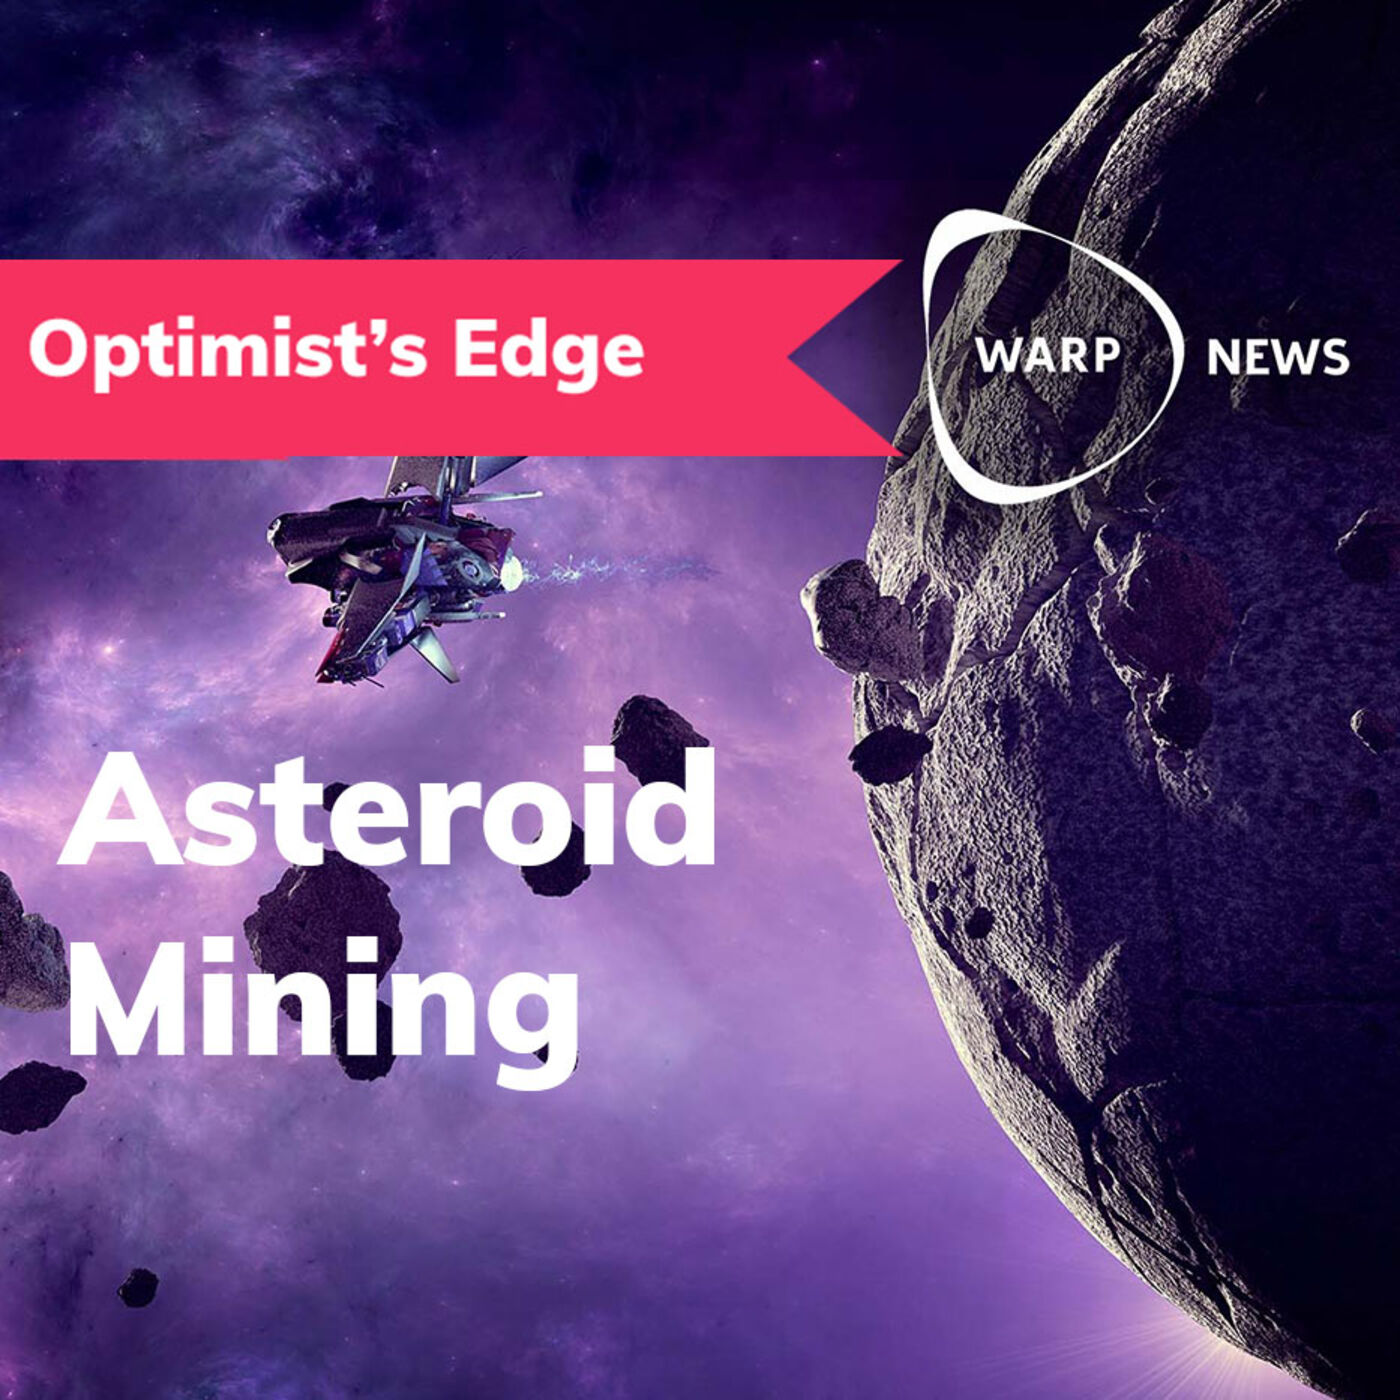 💡 Optimist's Edge: In space we have all the minerals we need